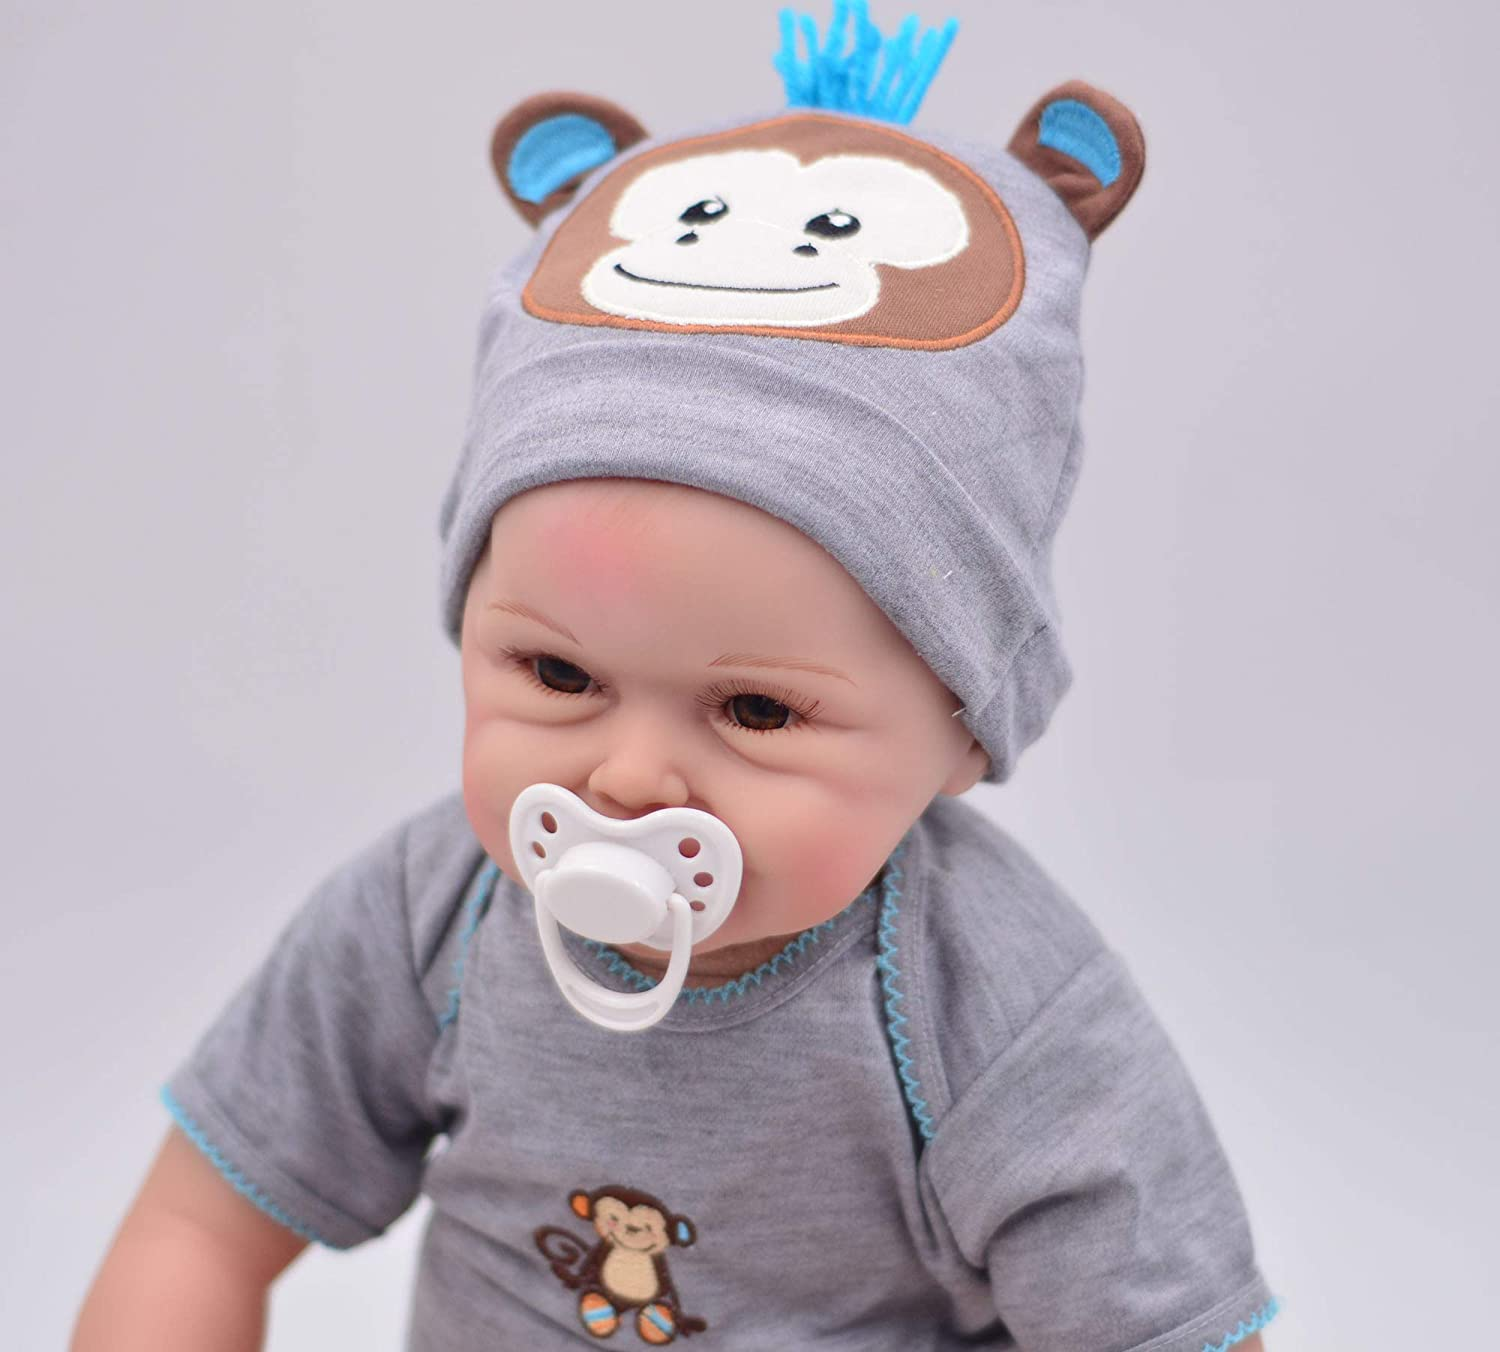 with a Print Animal Big Blanket Set Charm Baby 22 inch Reborn Baby Boy Soft Viny one Dolls with 3 Set Animal Embroidery hat and outft This is a Big Surprised